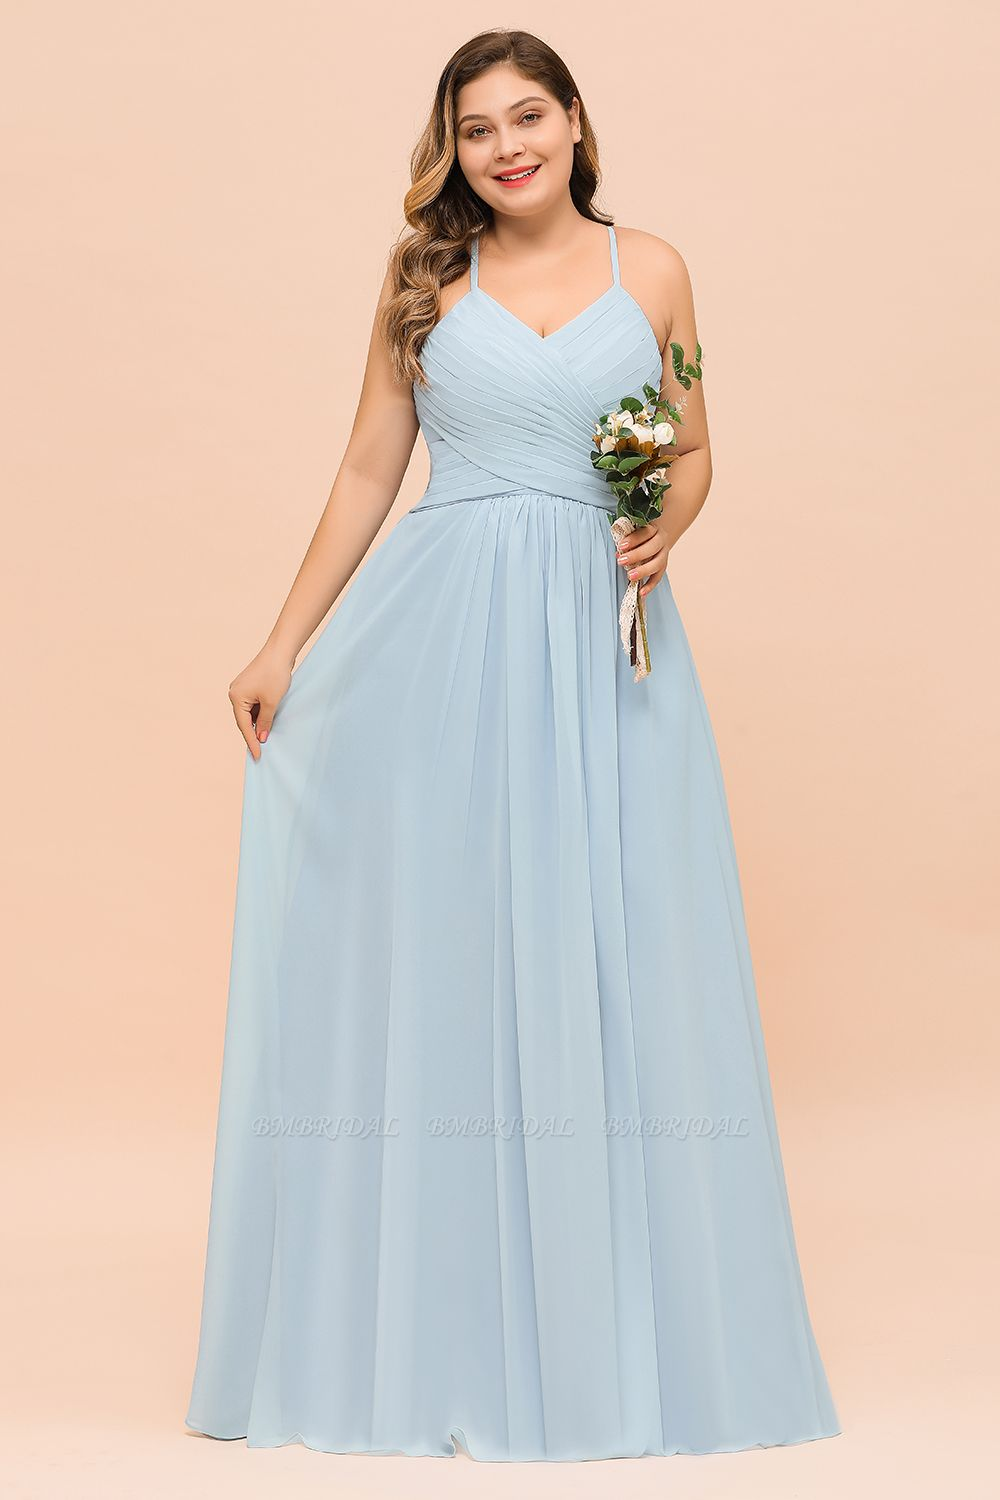 Plus Size V-Neck Ruffle Chiffon Sky Blue Bridesmaid Dresses Online